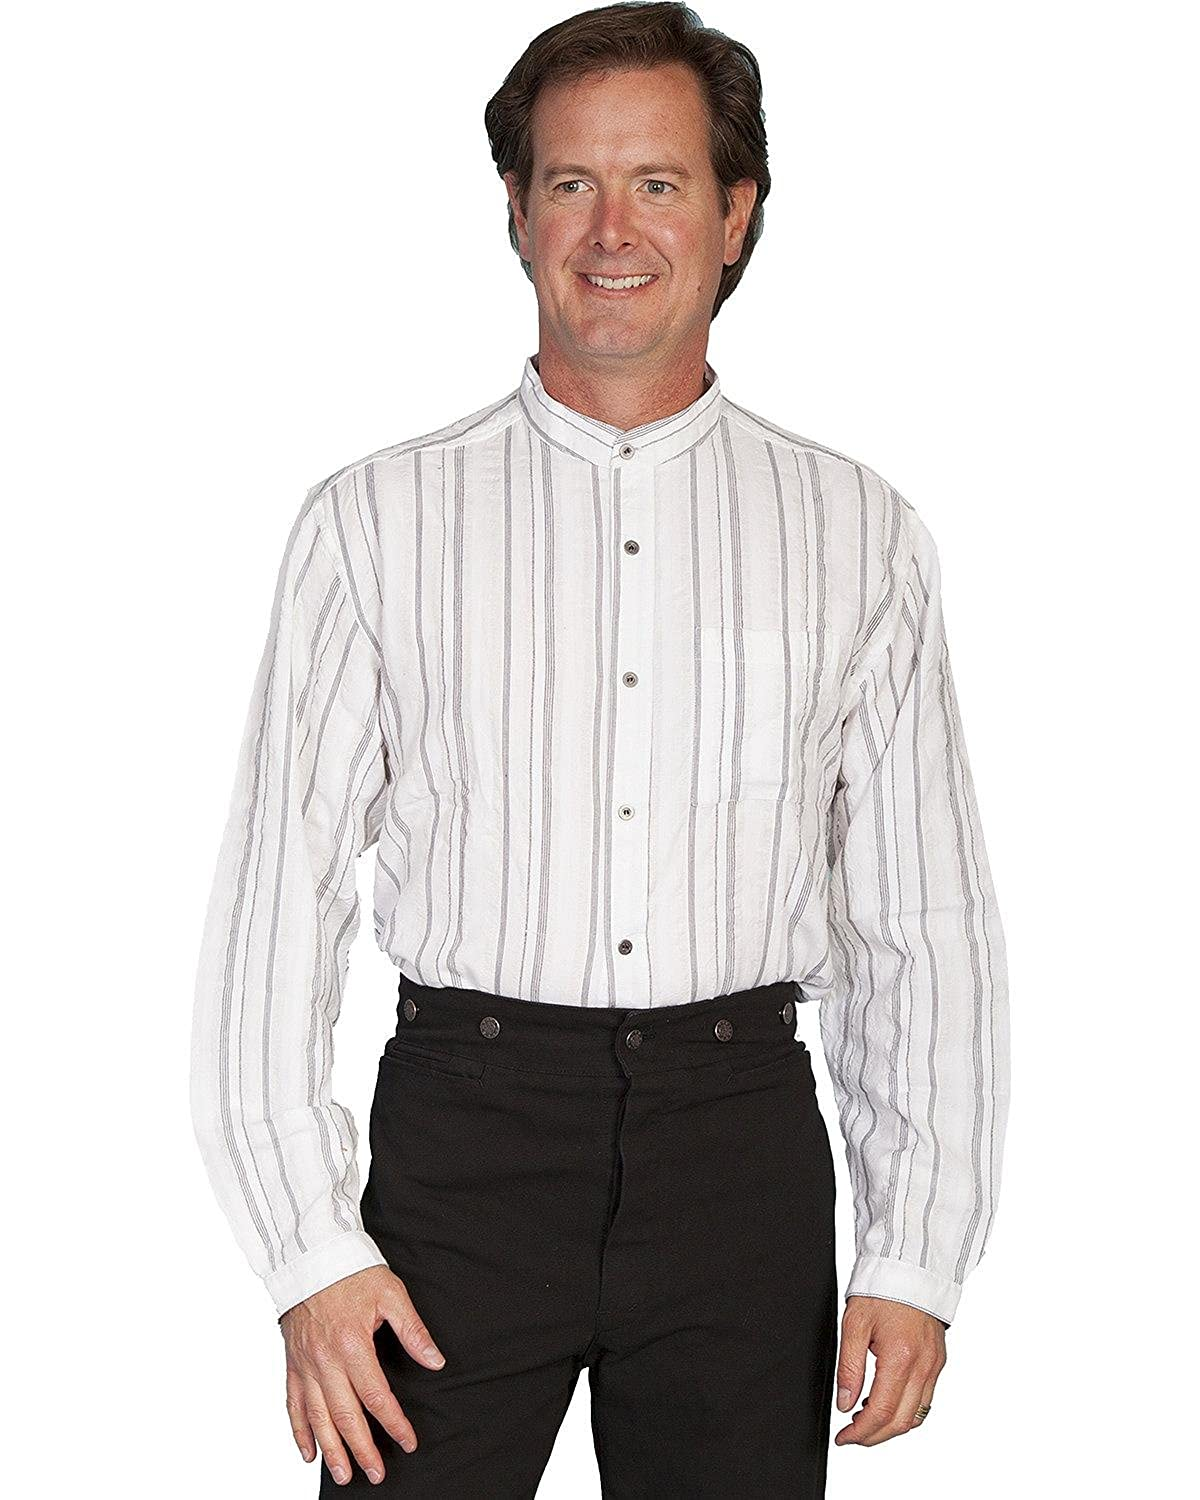 Vintage Shirts – Mens – Retro Shirts Scully One of Our Best Selling Shirts - White $49.99 AT vintagedancer.com